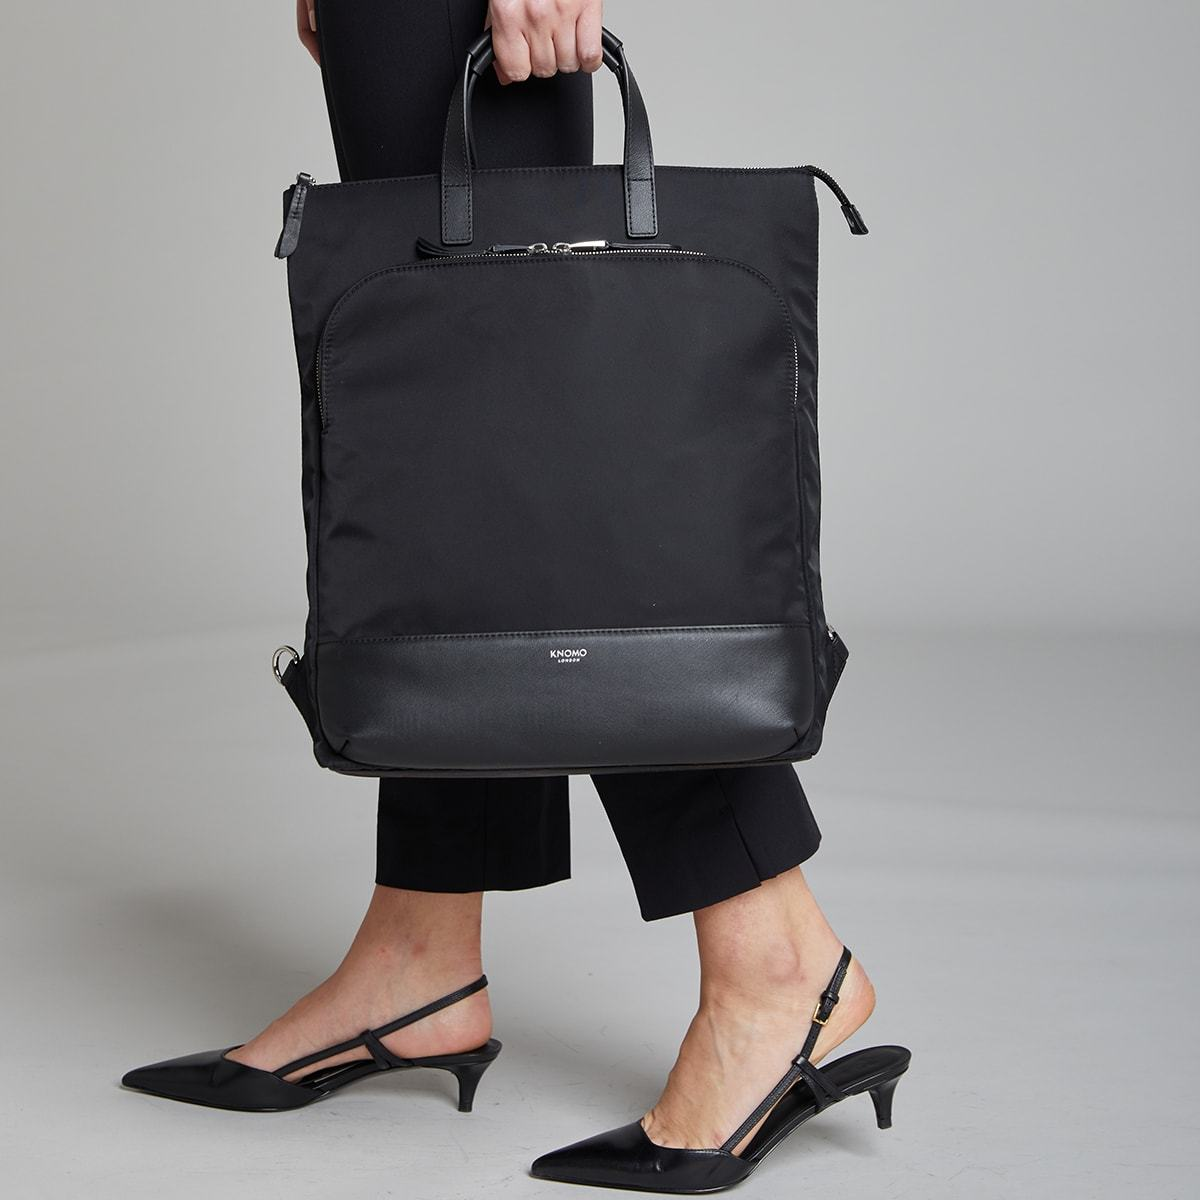 "KNOMO Harewood Laptop Tote Backpack Female Model Holding By Straps 15"" -  Black 